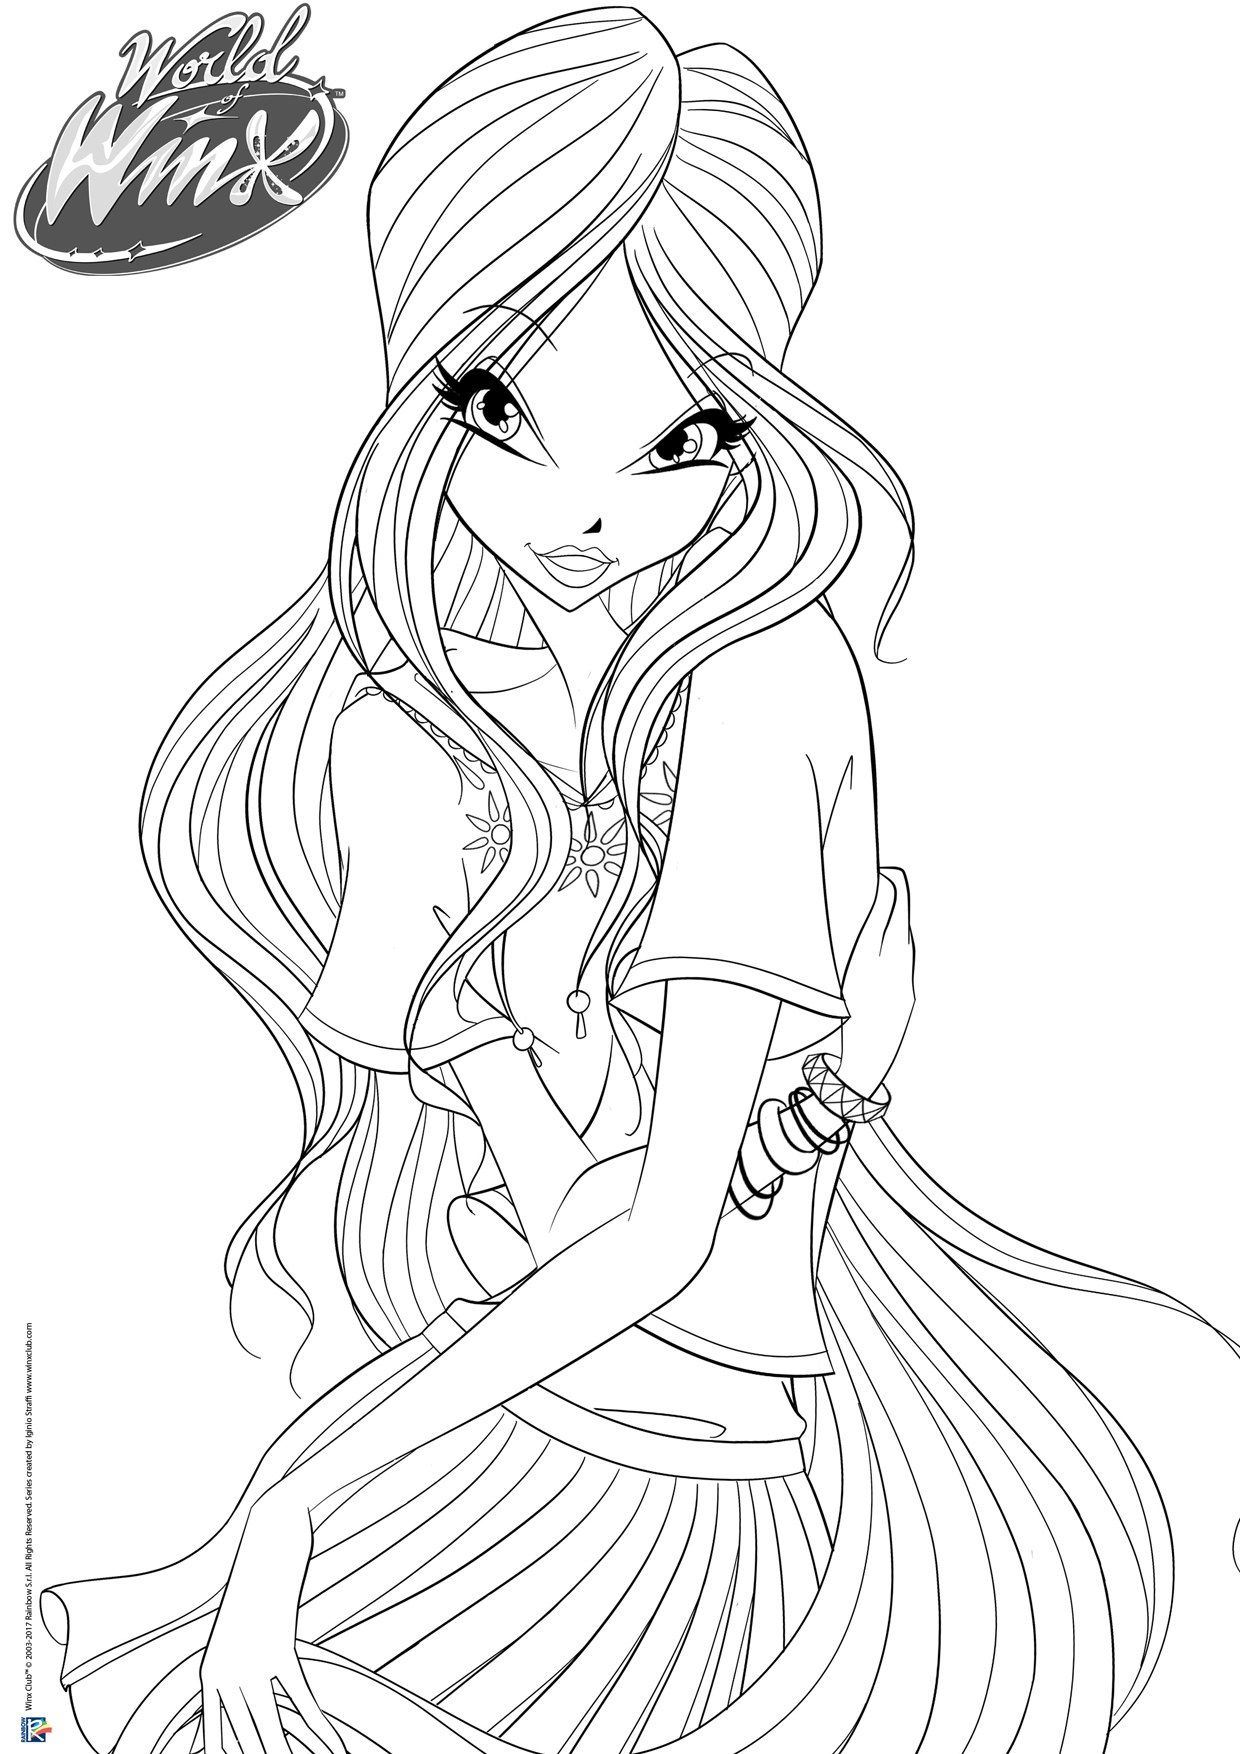 Pin By David M On Winx Club Winx Club Coloring Pages Sketches